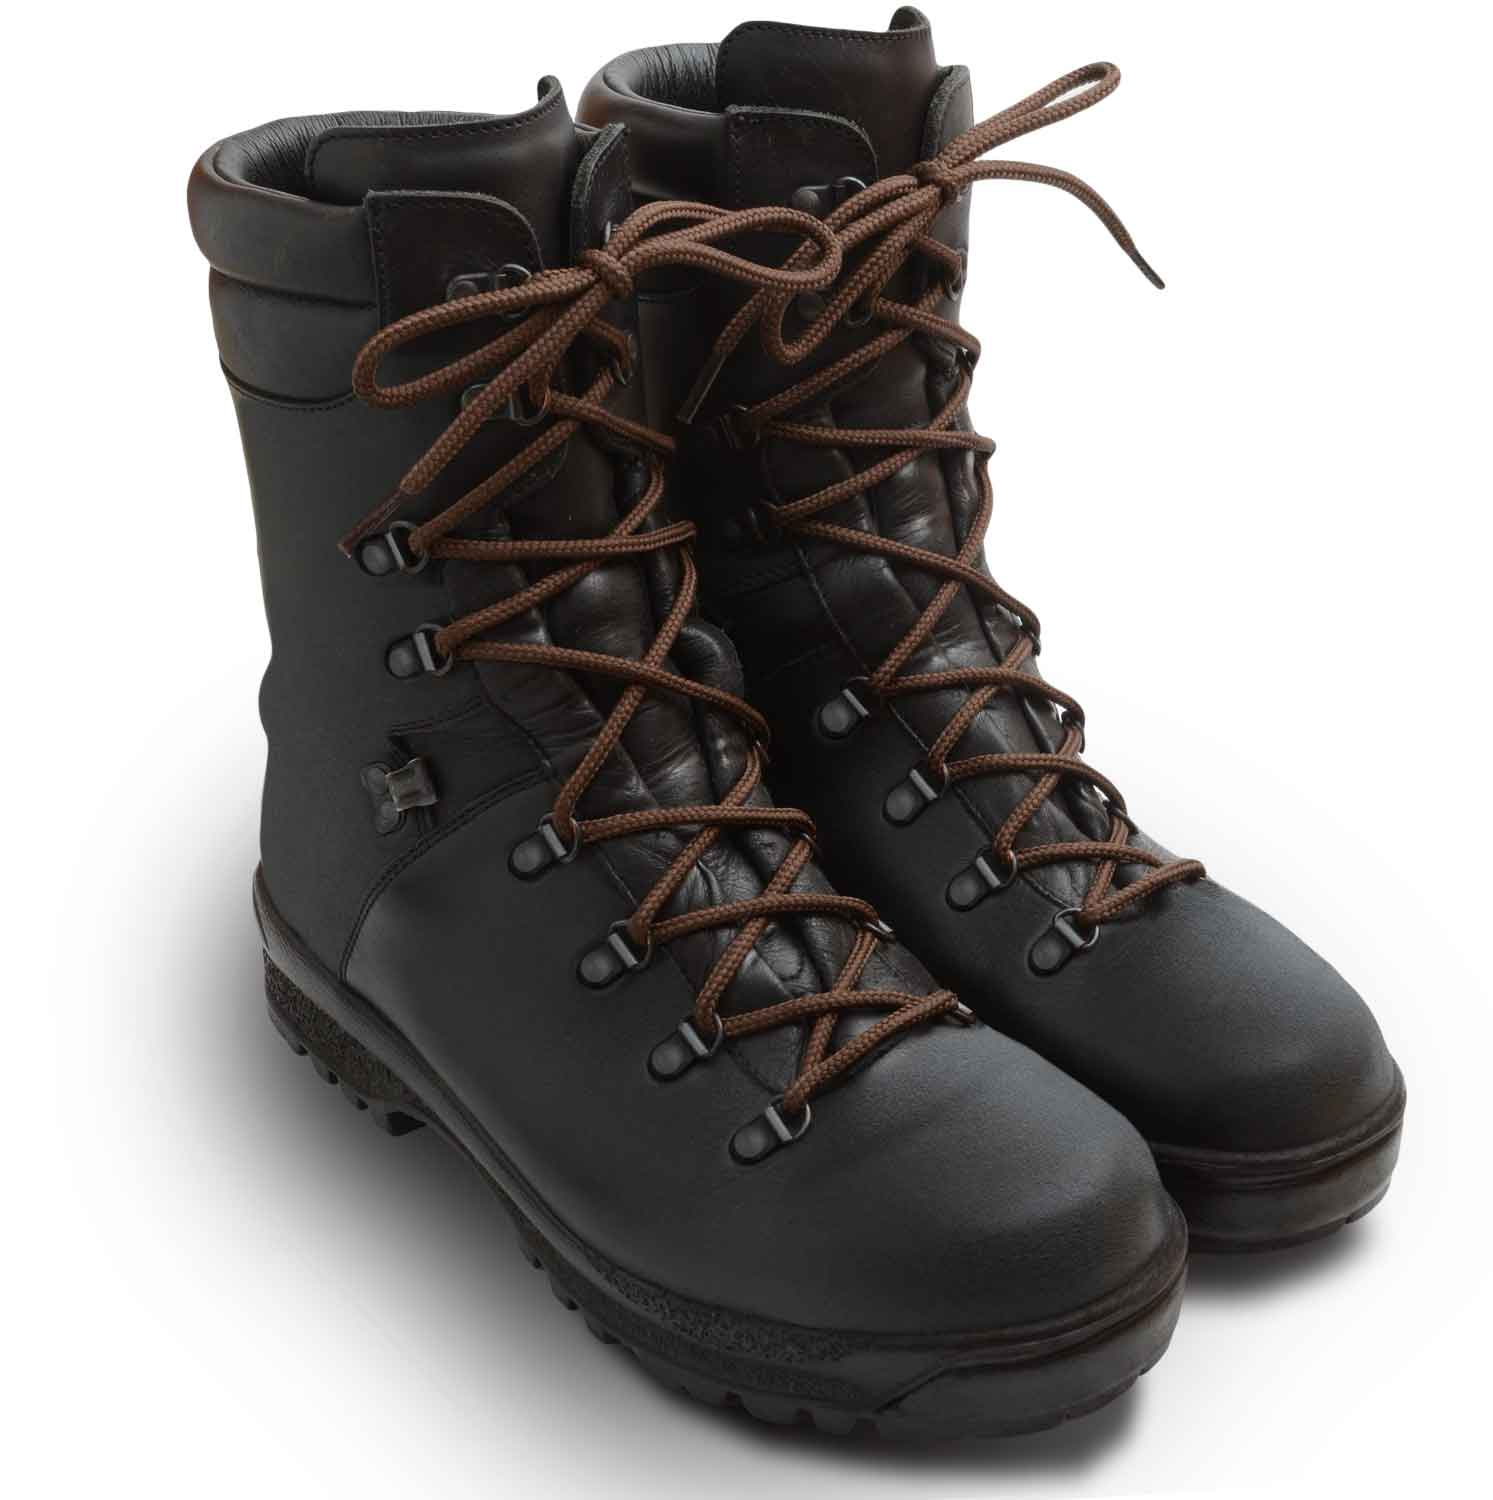 baa85b0ed7e 8 BEST BOOT LACES THAT ARE DURABLE